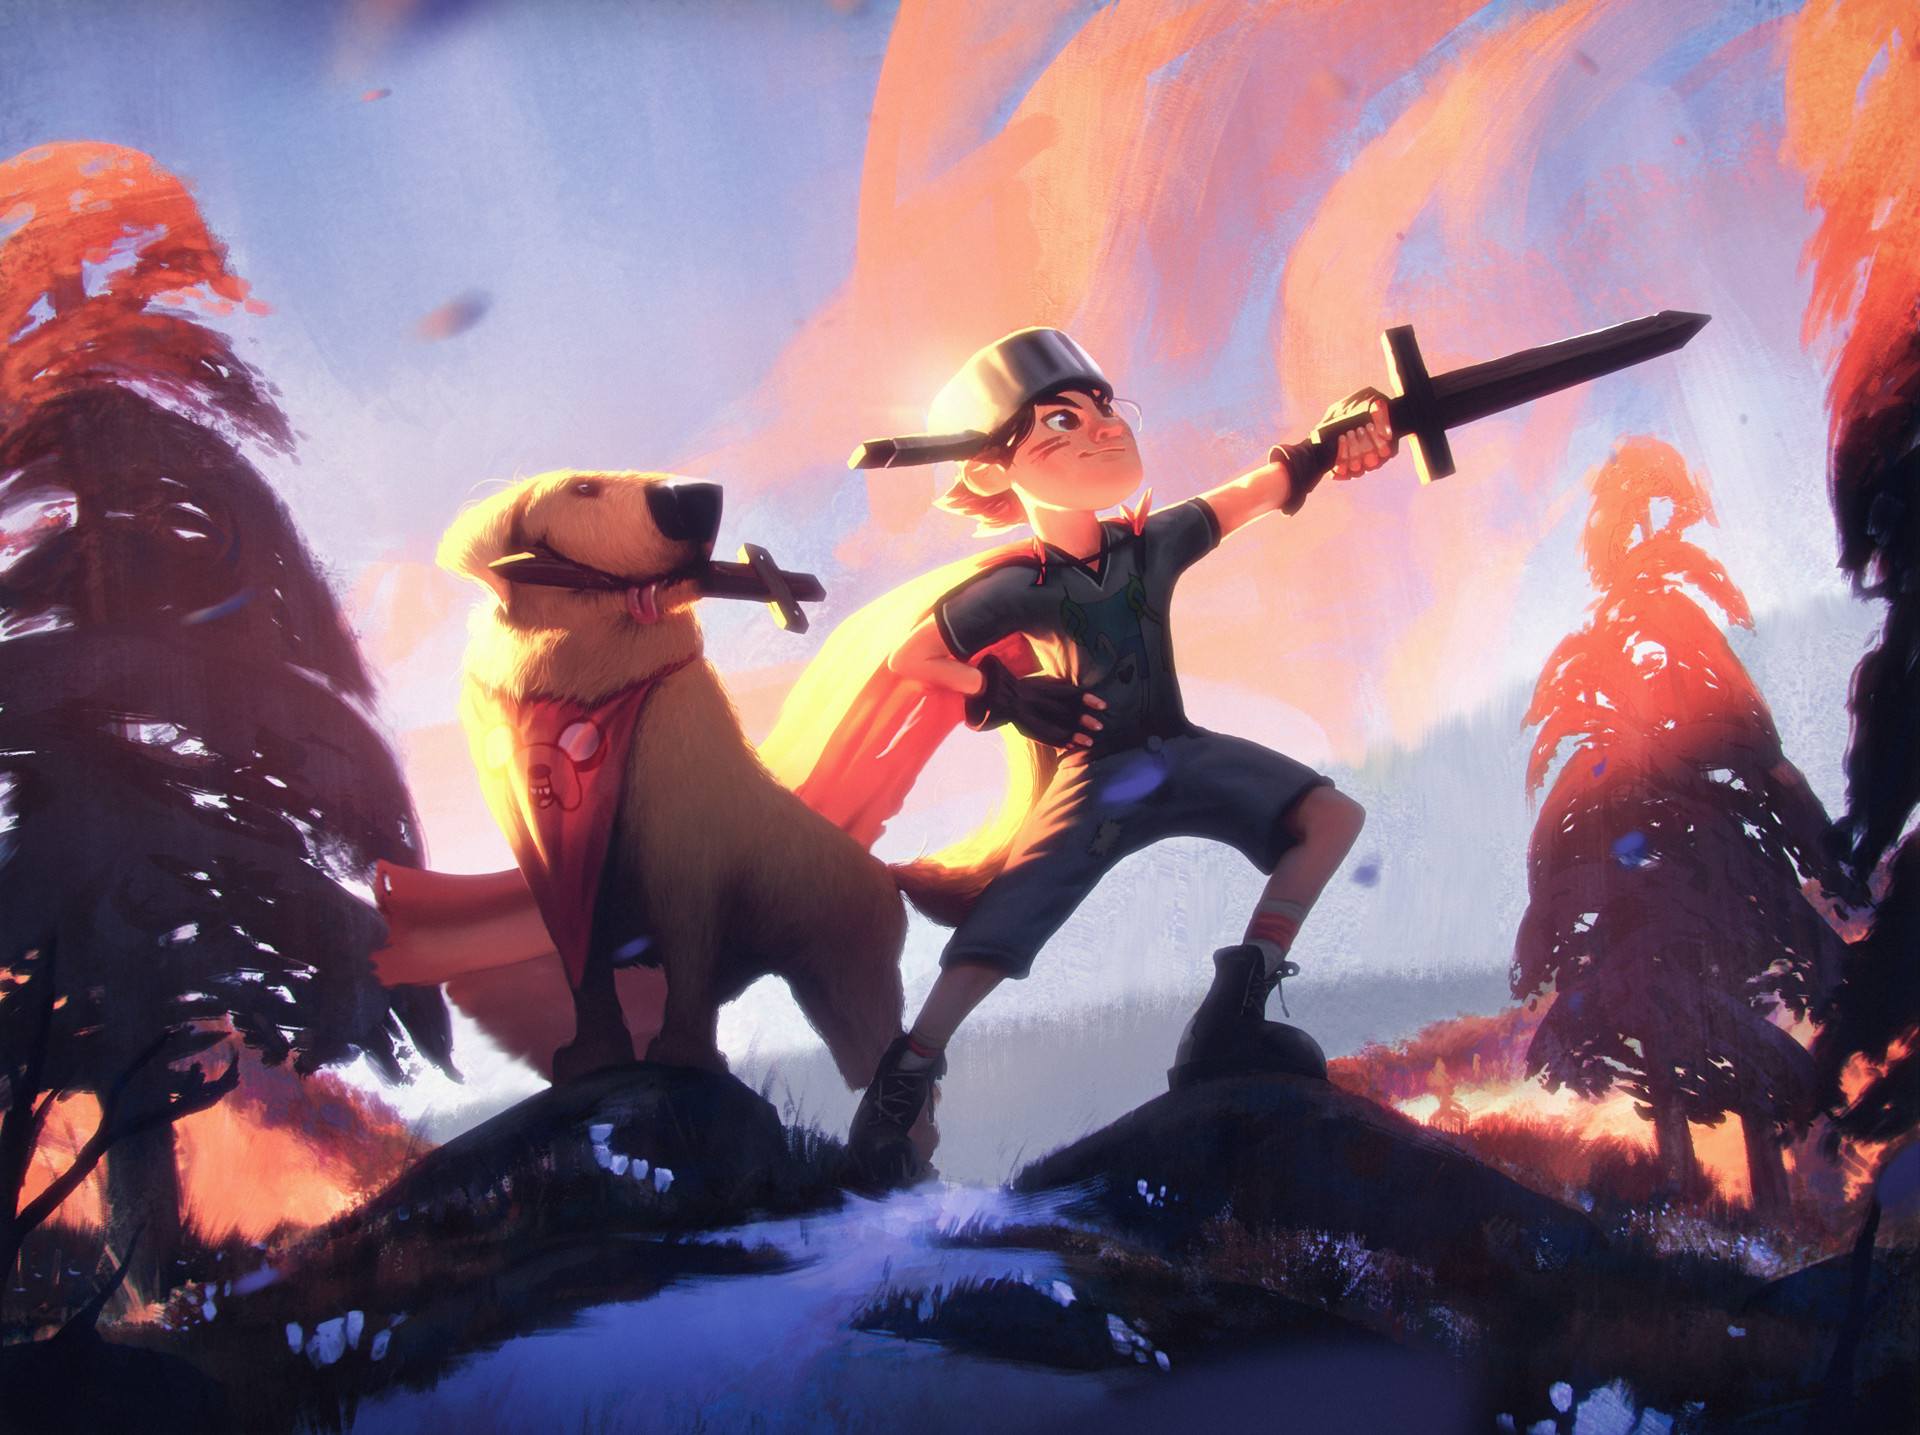 Wojtek fus adventure time2